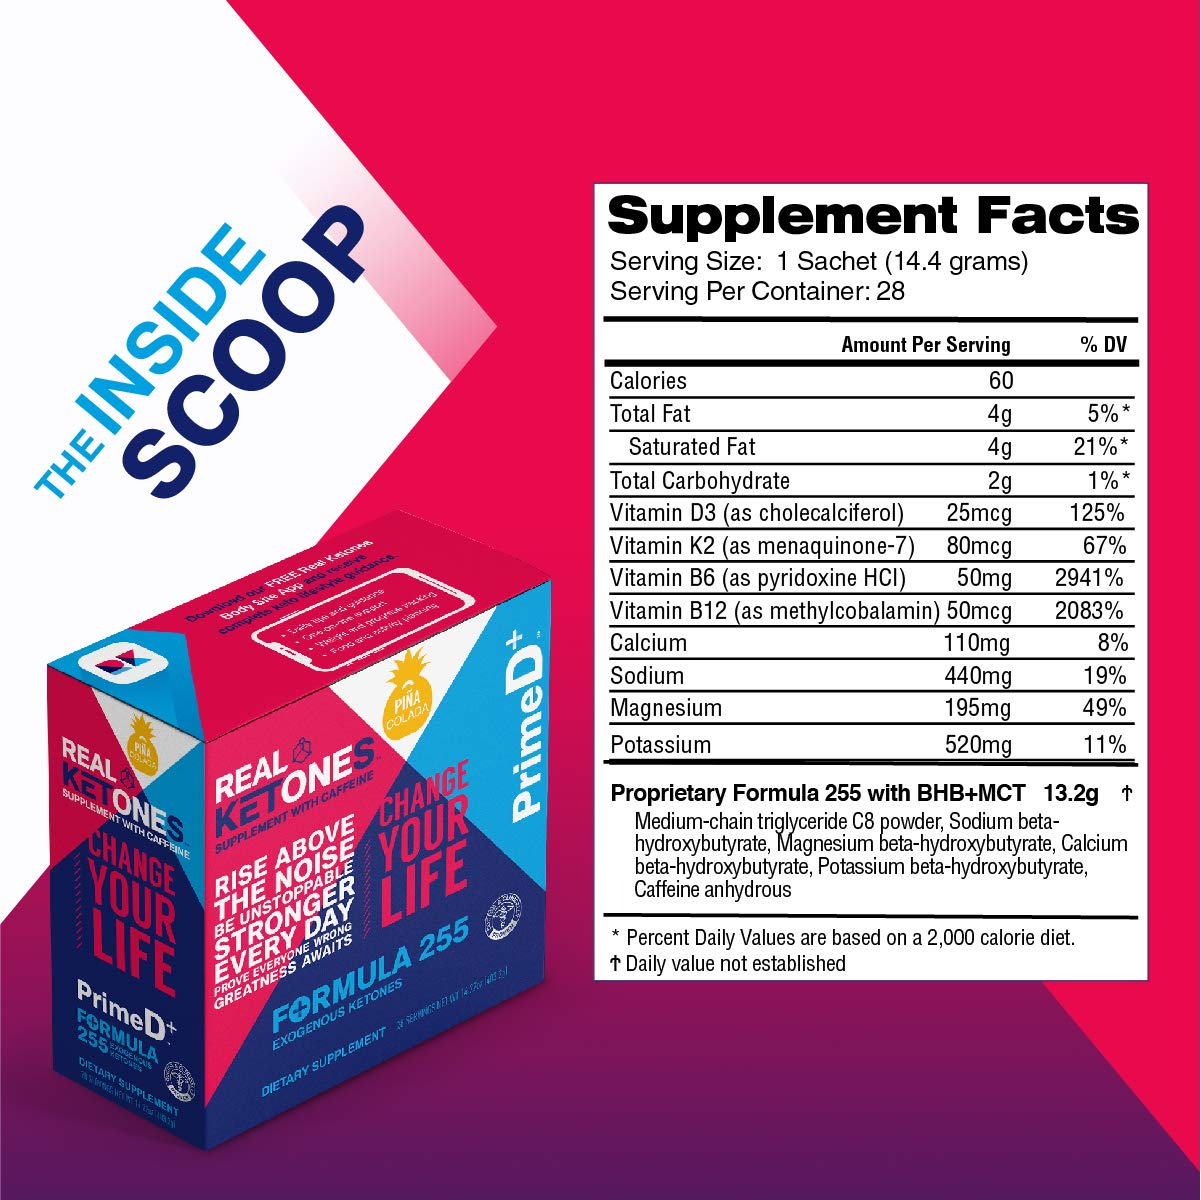 Real Ketones Prime D+ Pina Colada Caffeinated Exogenous Ketone Supplement with BHB and MCT Combo for Ketone Boost, Energy and Focus by KEGENIX (Image #2)